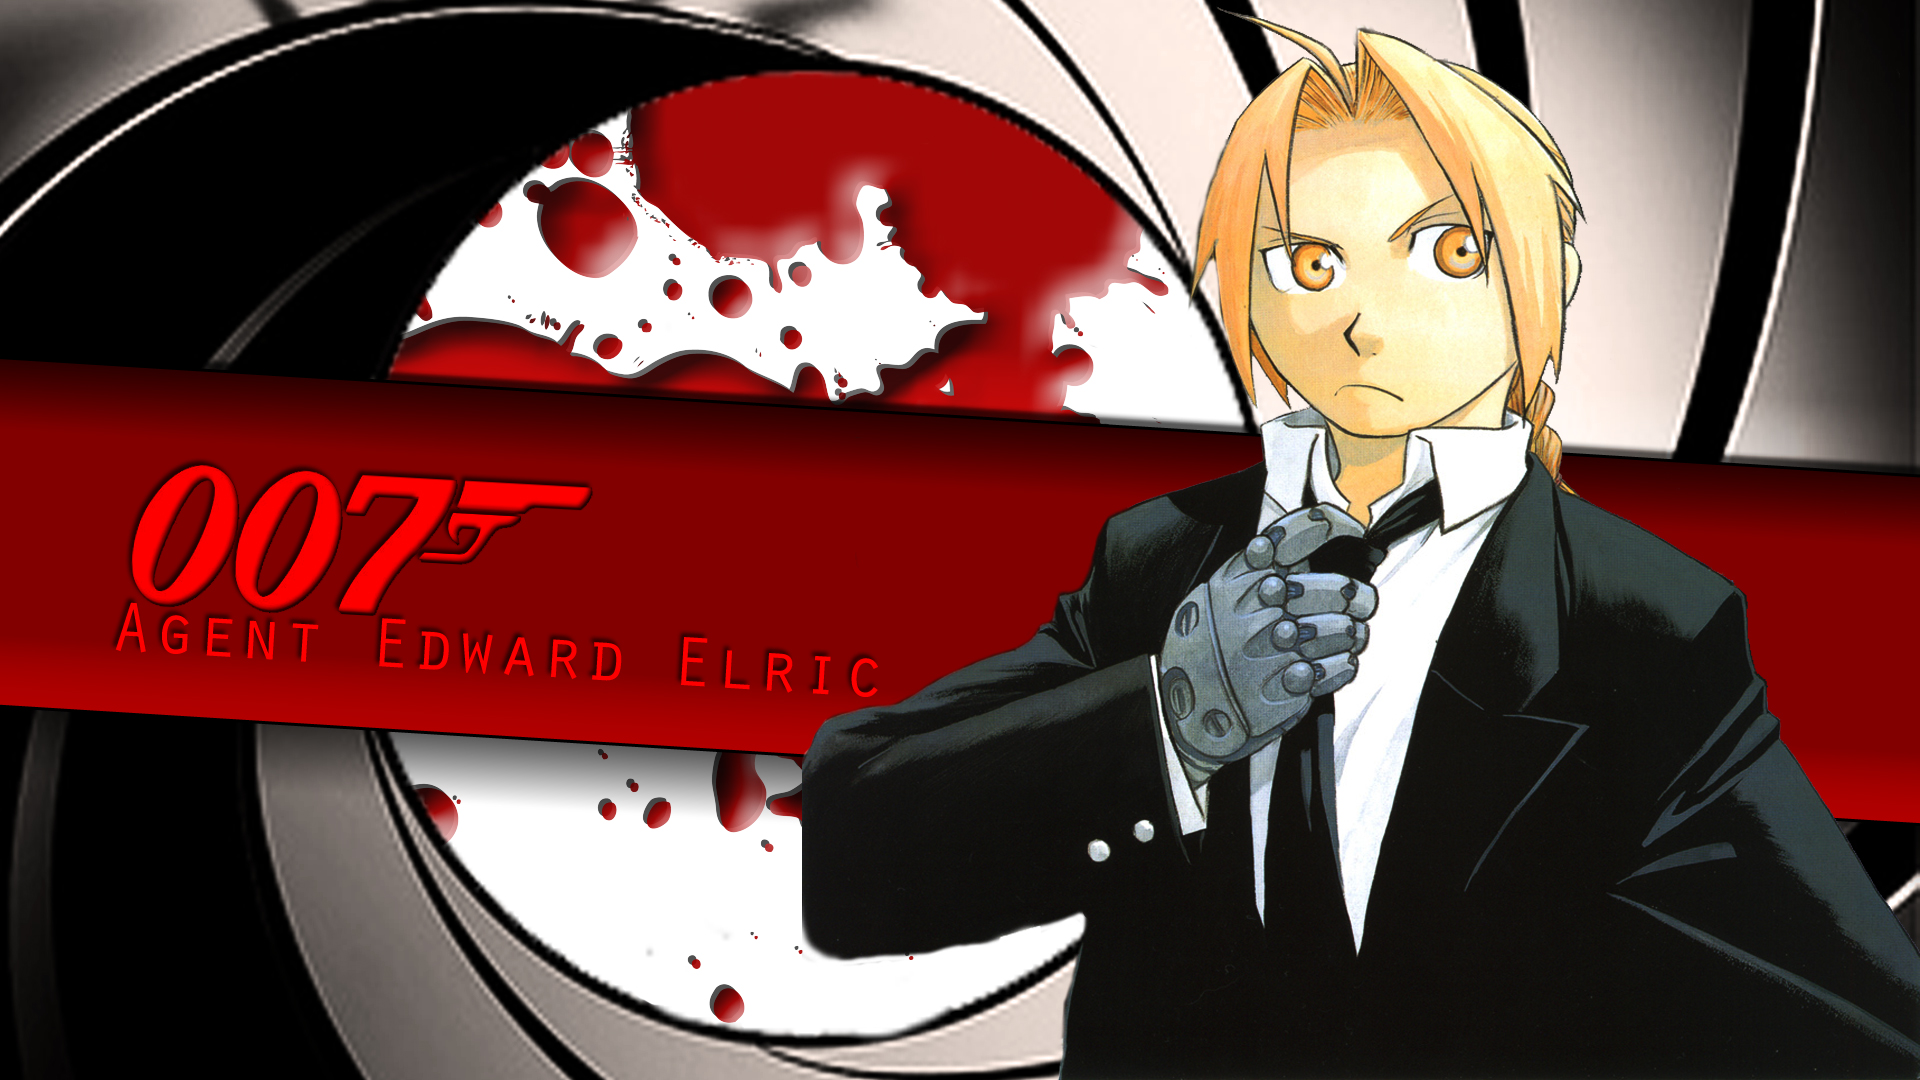 Edward Elric Wallpapers High Quality Download 1920x1080